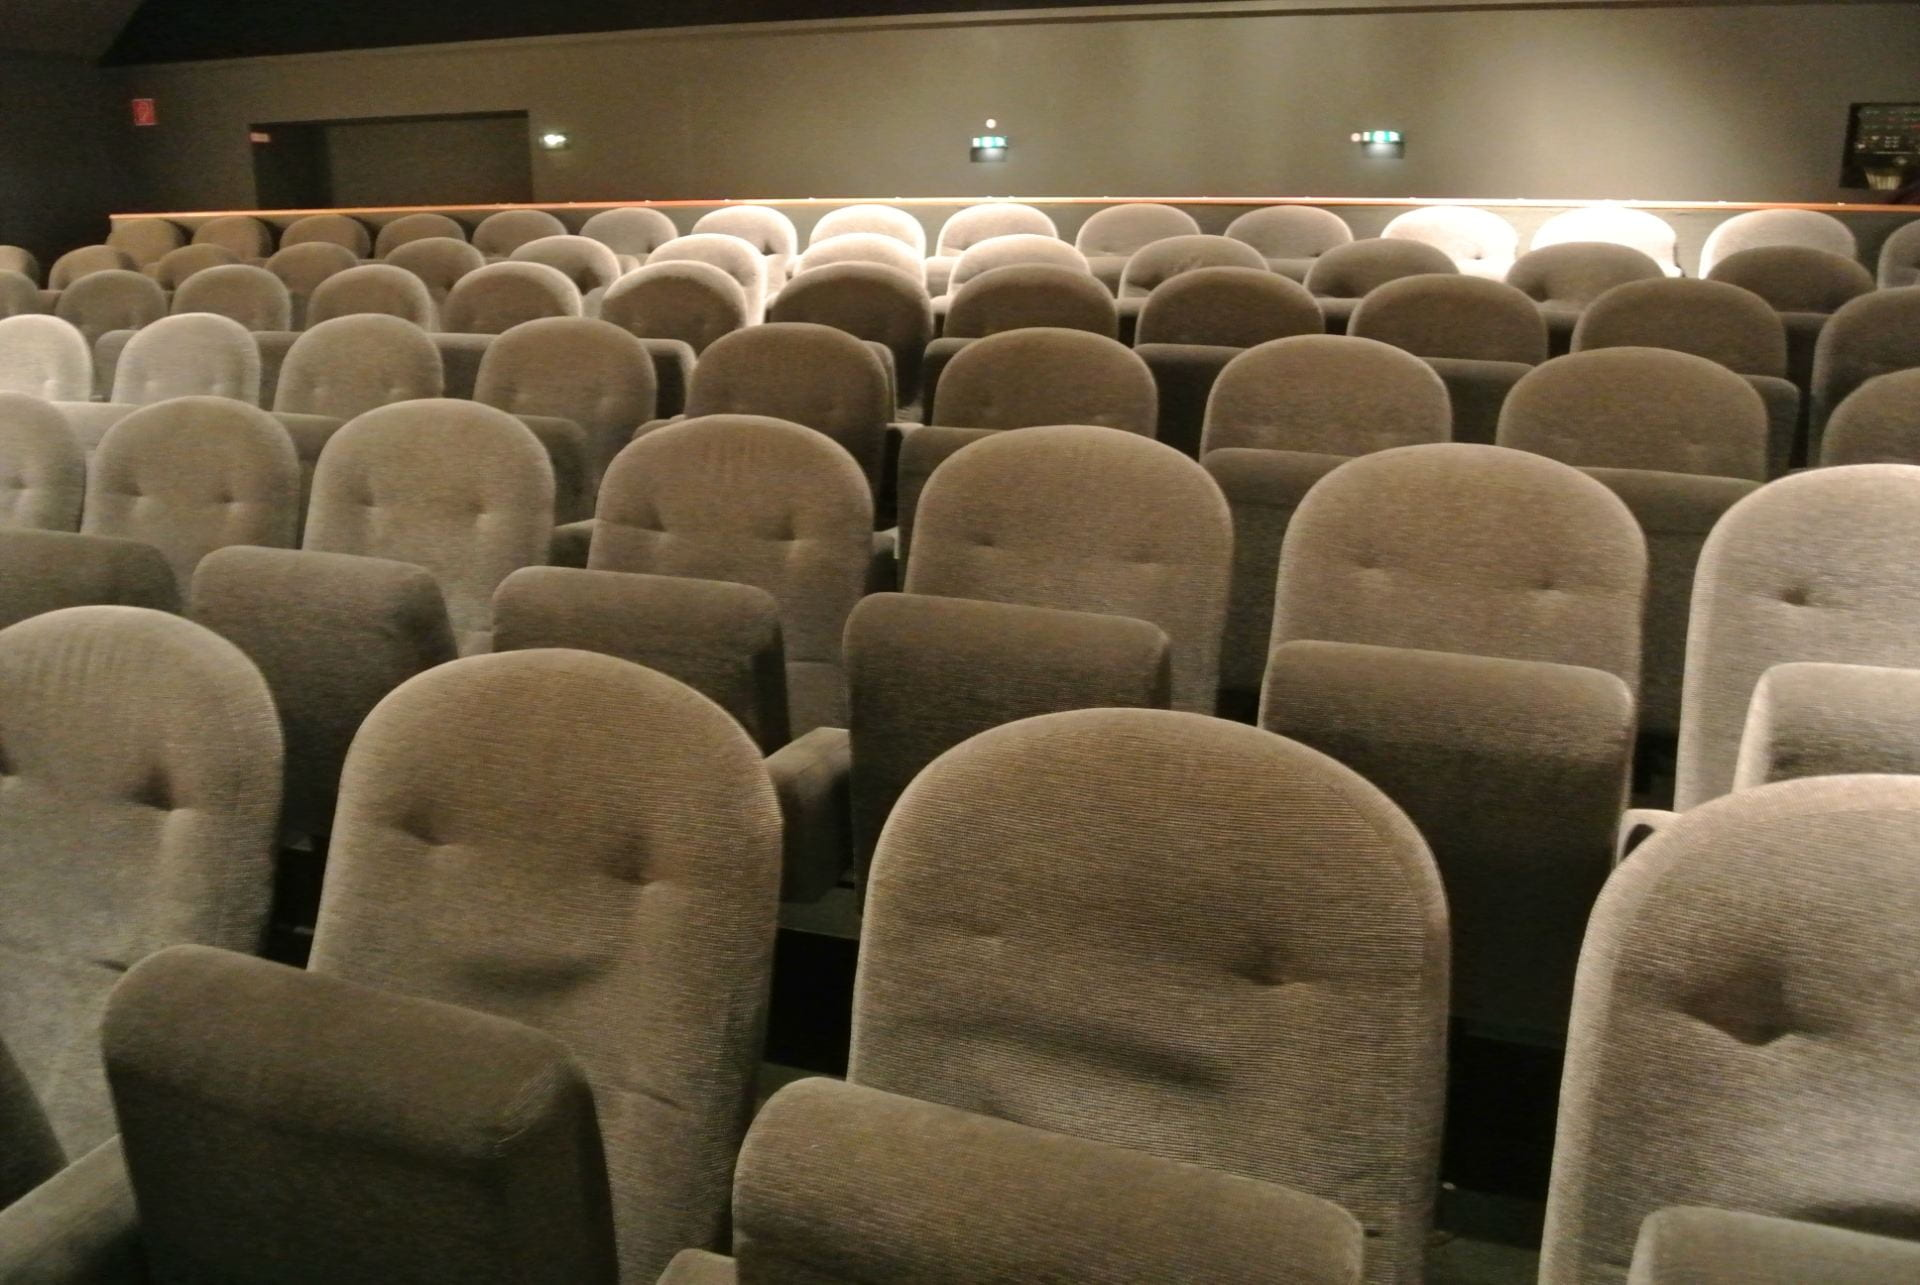 Rows of seats in a movie theater.